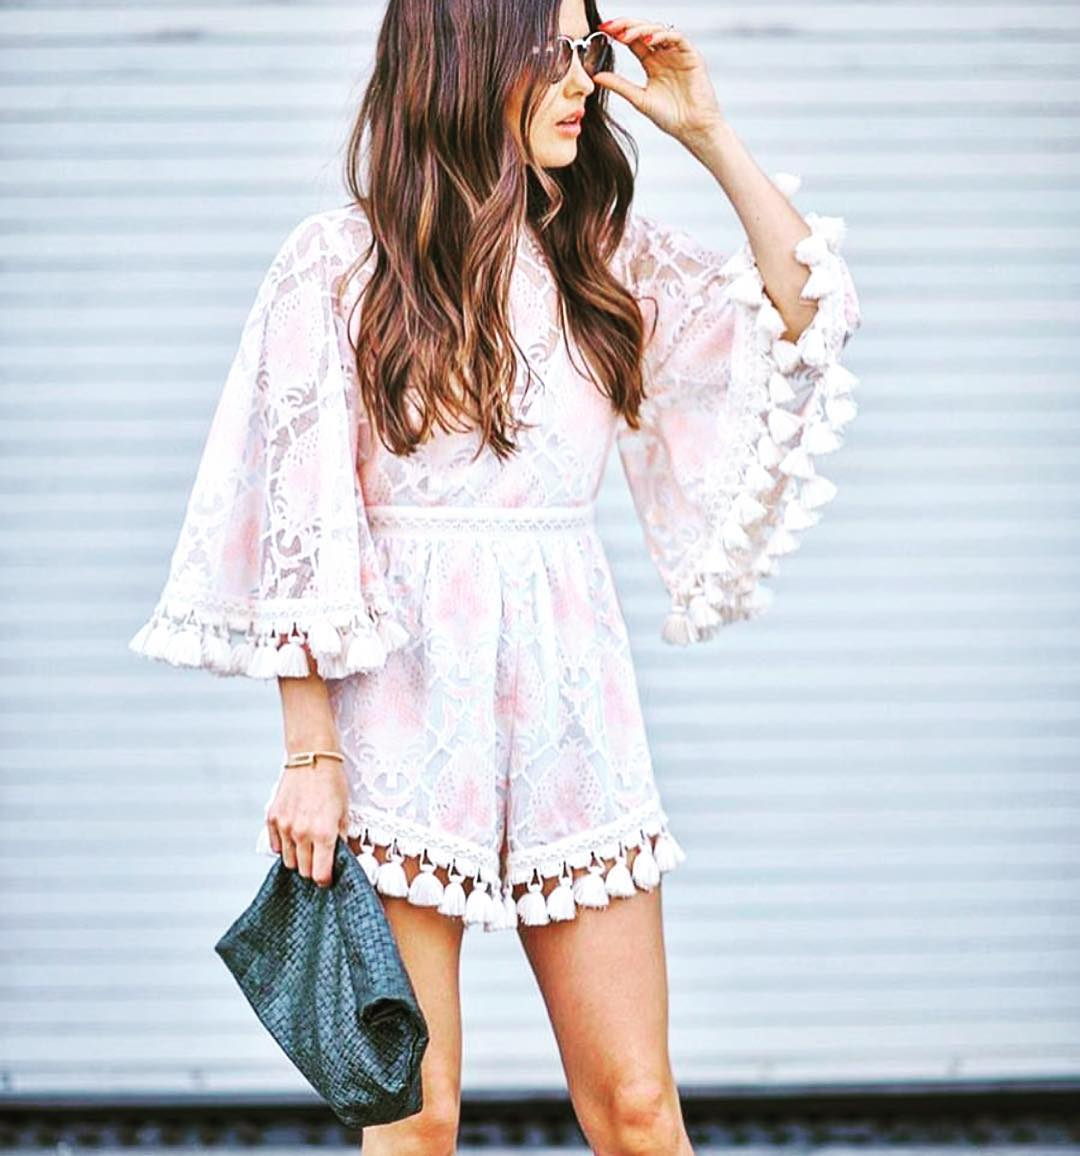 Dazzling Romper Perfect For Summer